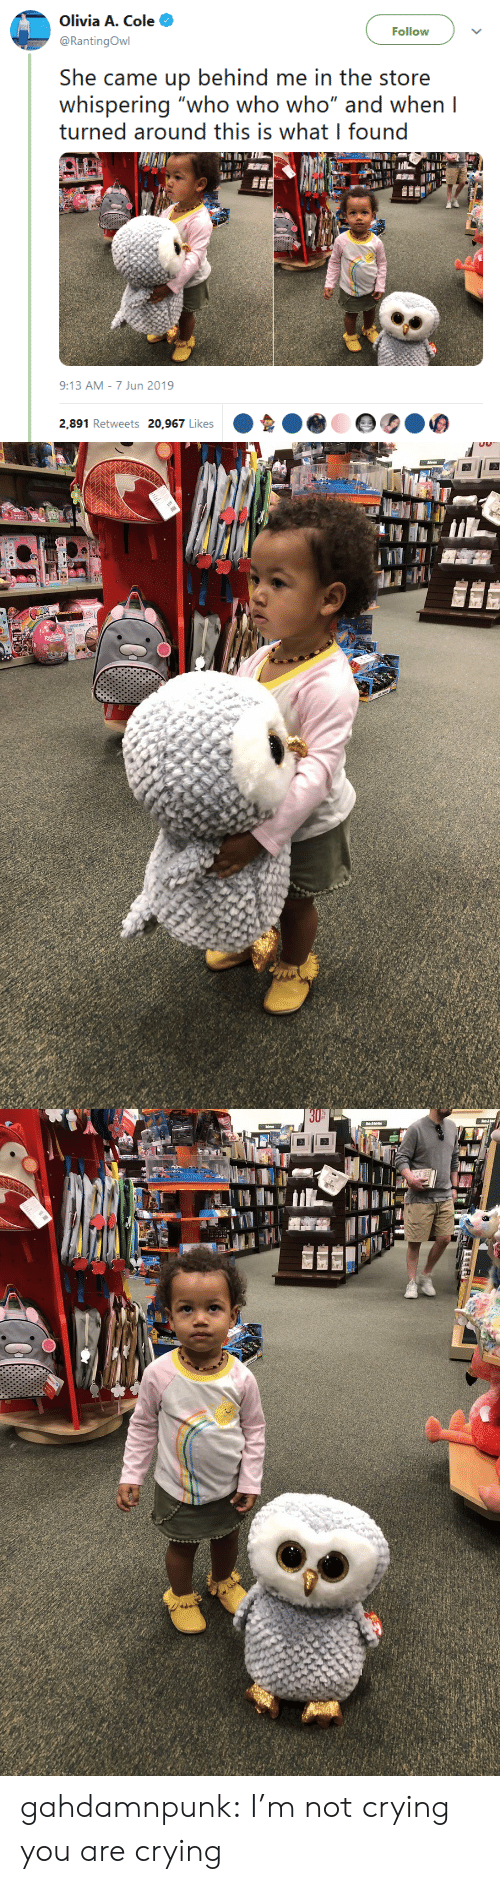 """Crying, Not Crying, and Target: Olivia A. Cole  Follow  @RantingOwl  She came up behind me in the store  whispering """"who who who"""" and when I  turned around this is what I found  9:13 AM 7 Jun 2019  2,891 Retweets 20,967 Likes gahdamnpunk: I'm not crying you are crying"""